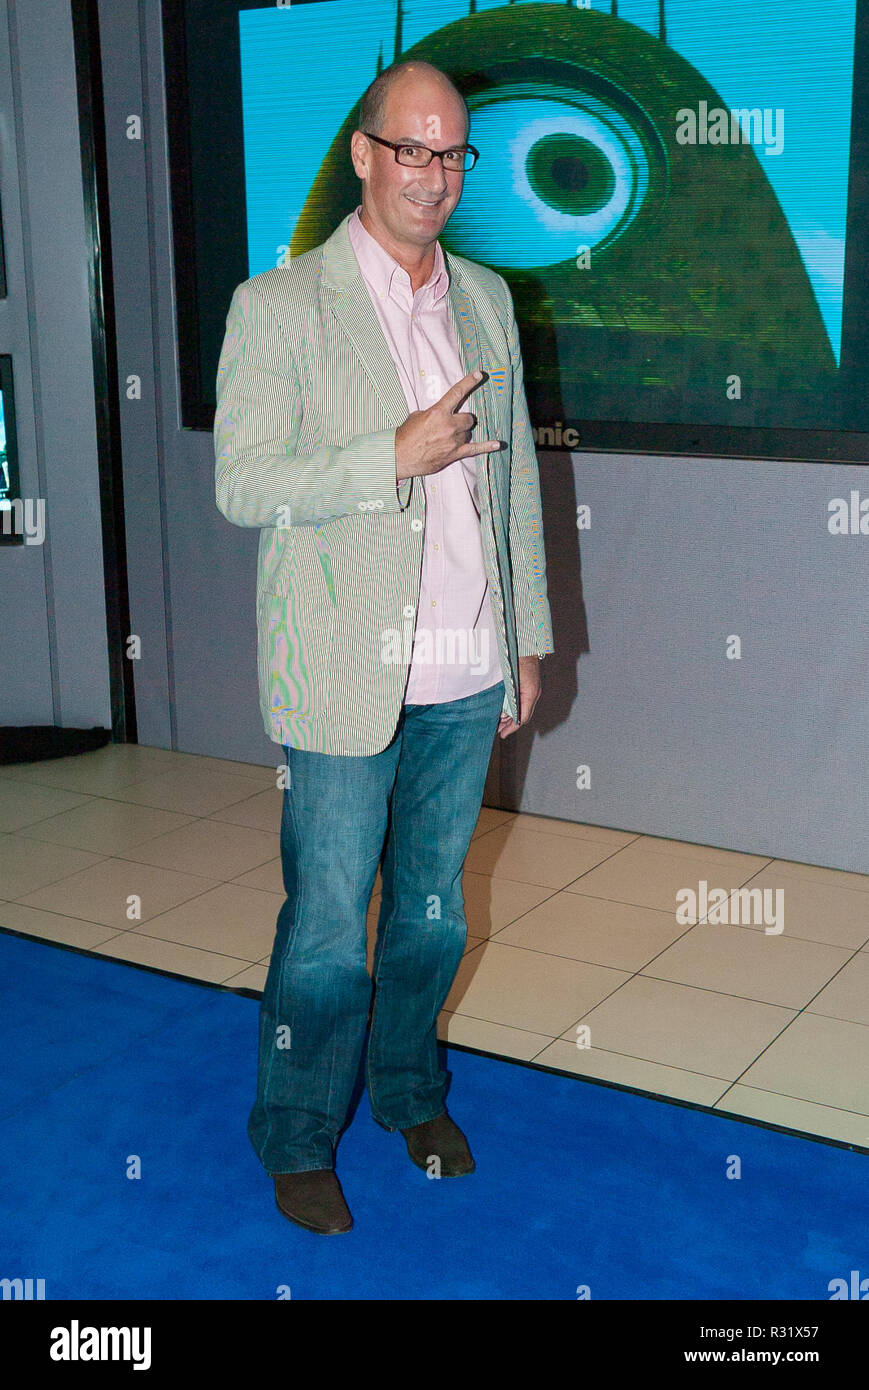 The 'Monsters Vs Aliens' movie premiere at the Greater Union George Street Cinema on March 5, 2009 in Sydney, Australia. Pictured: David Koch. - Stock Image